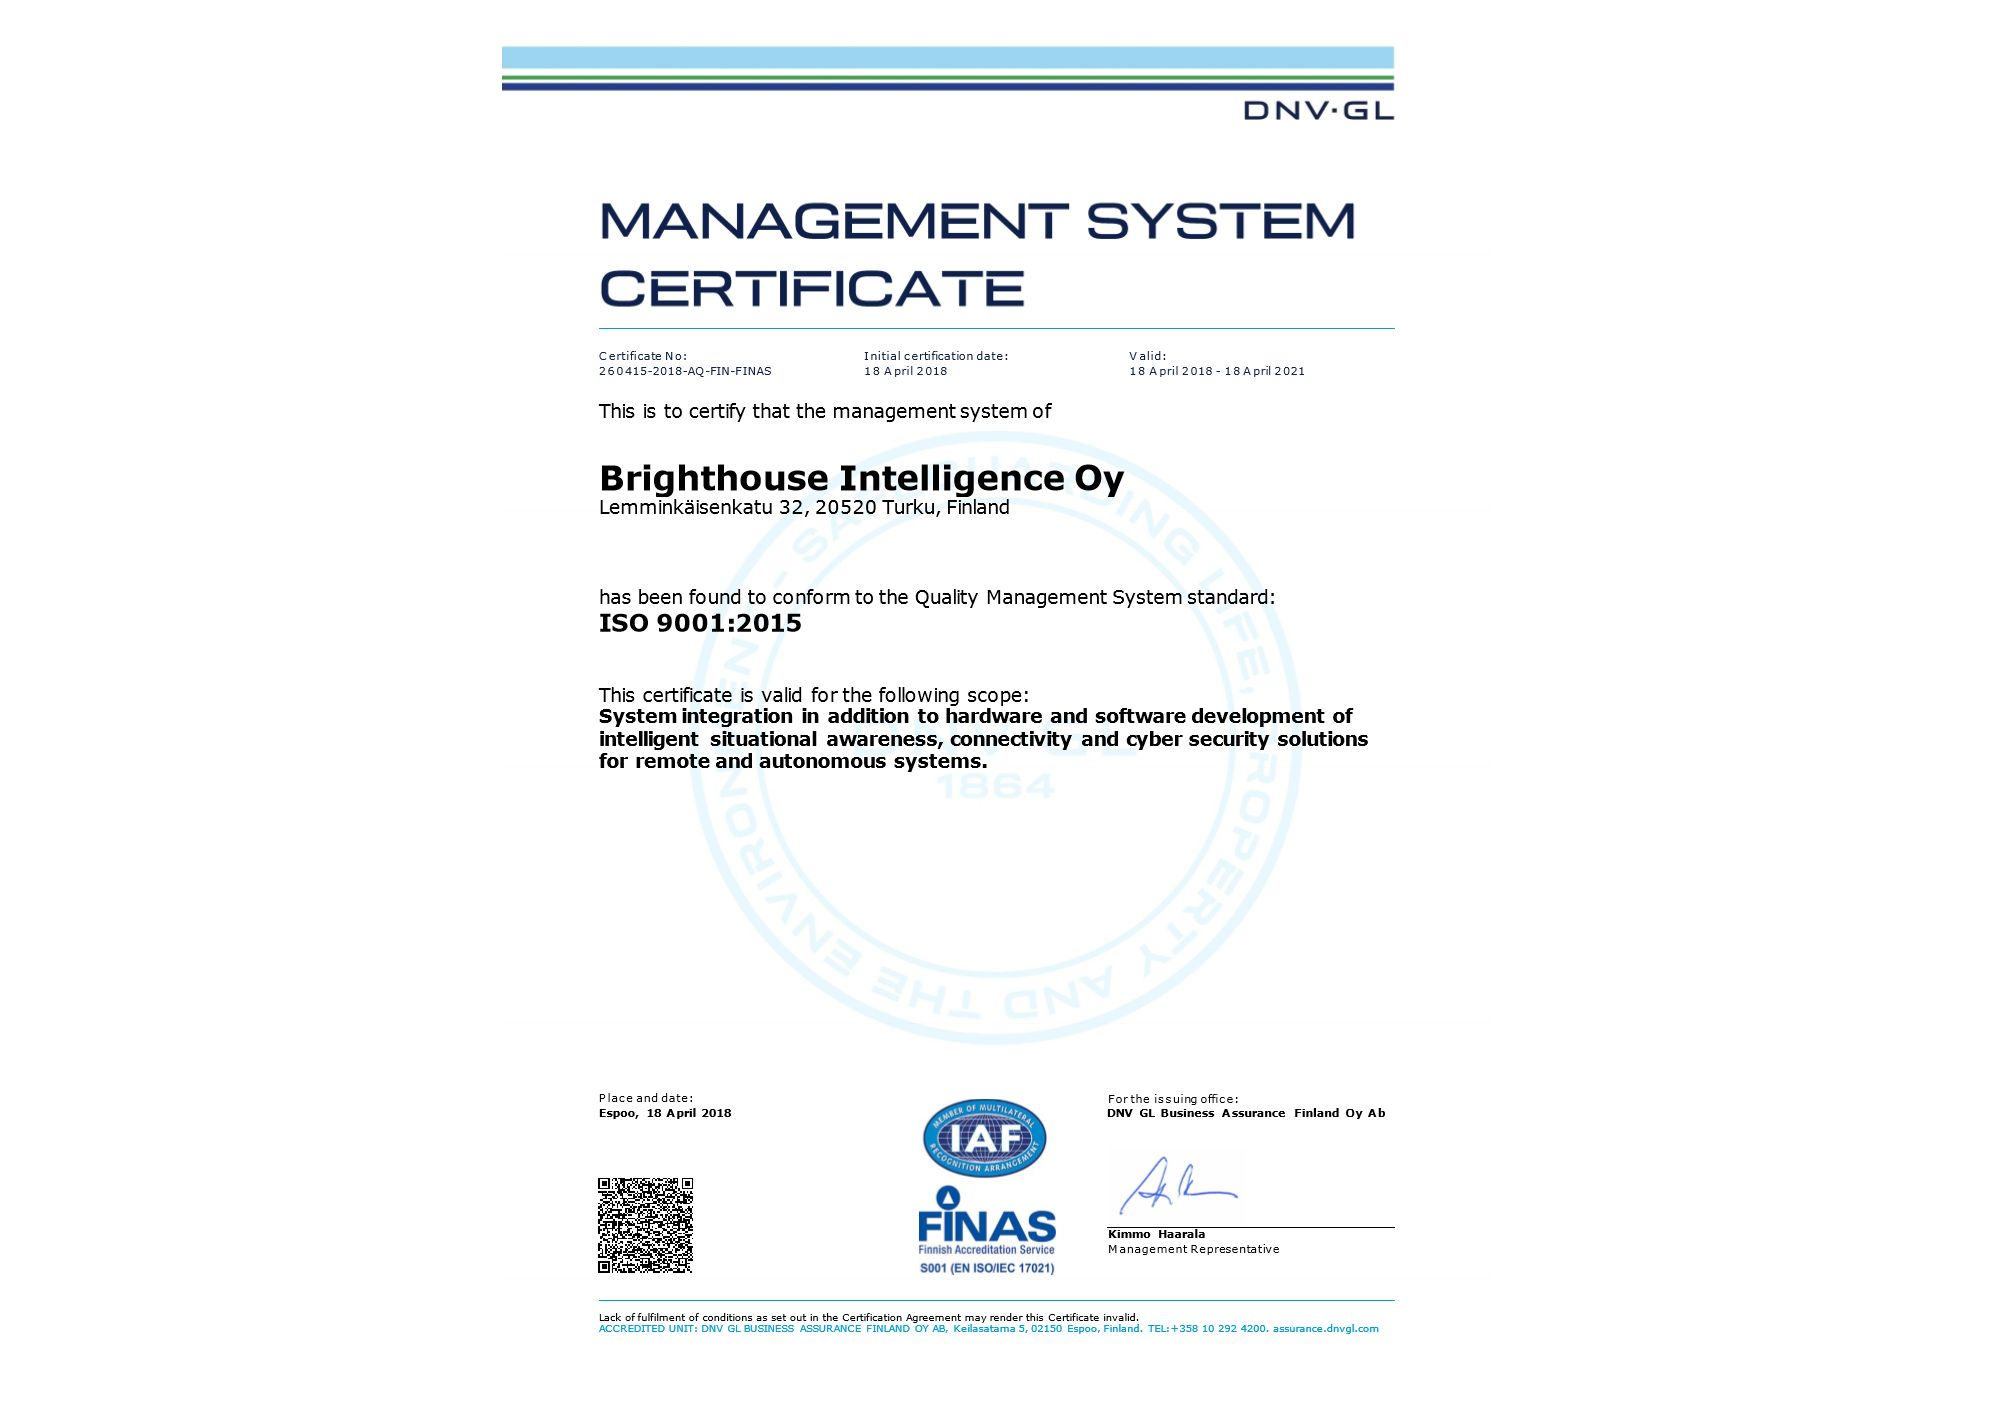 ISO9001 Certificate received